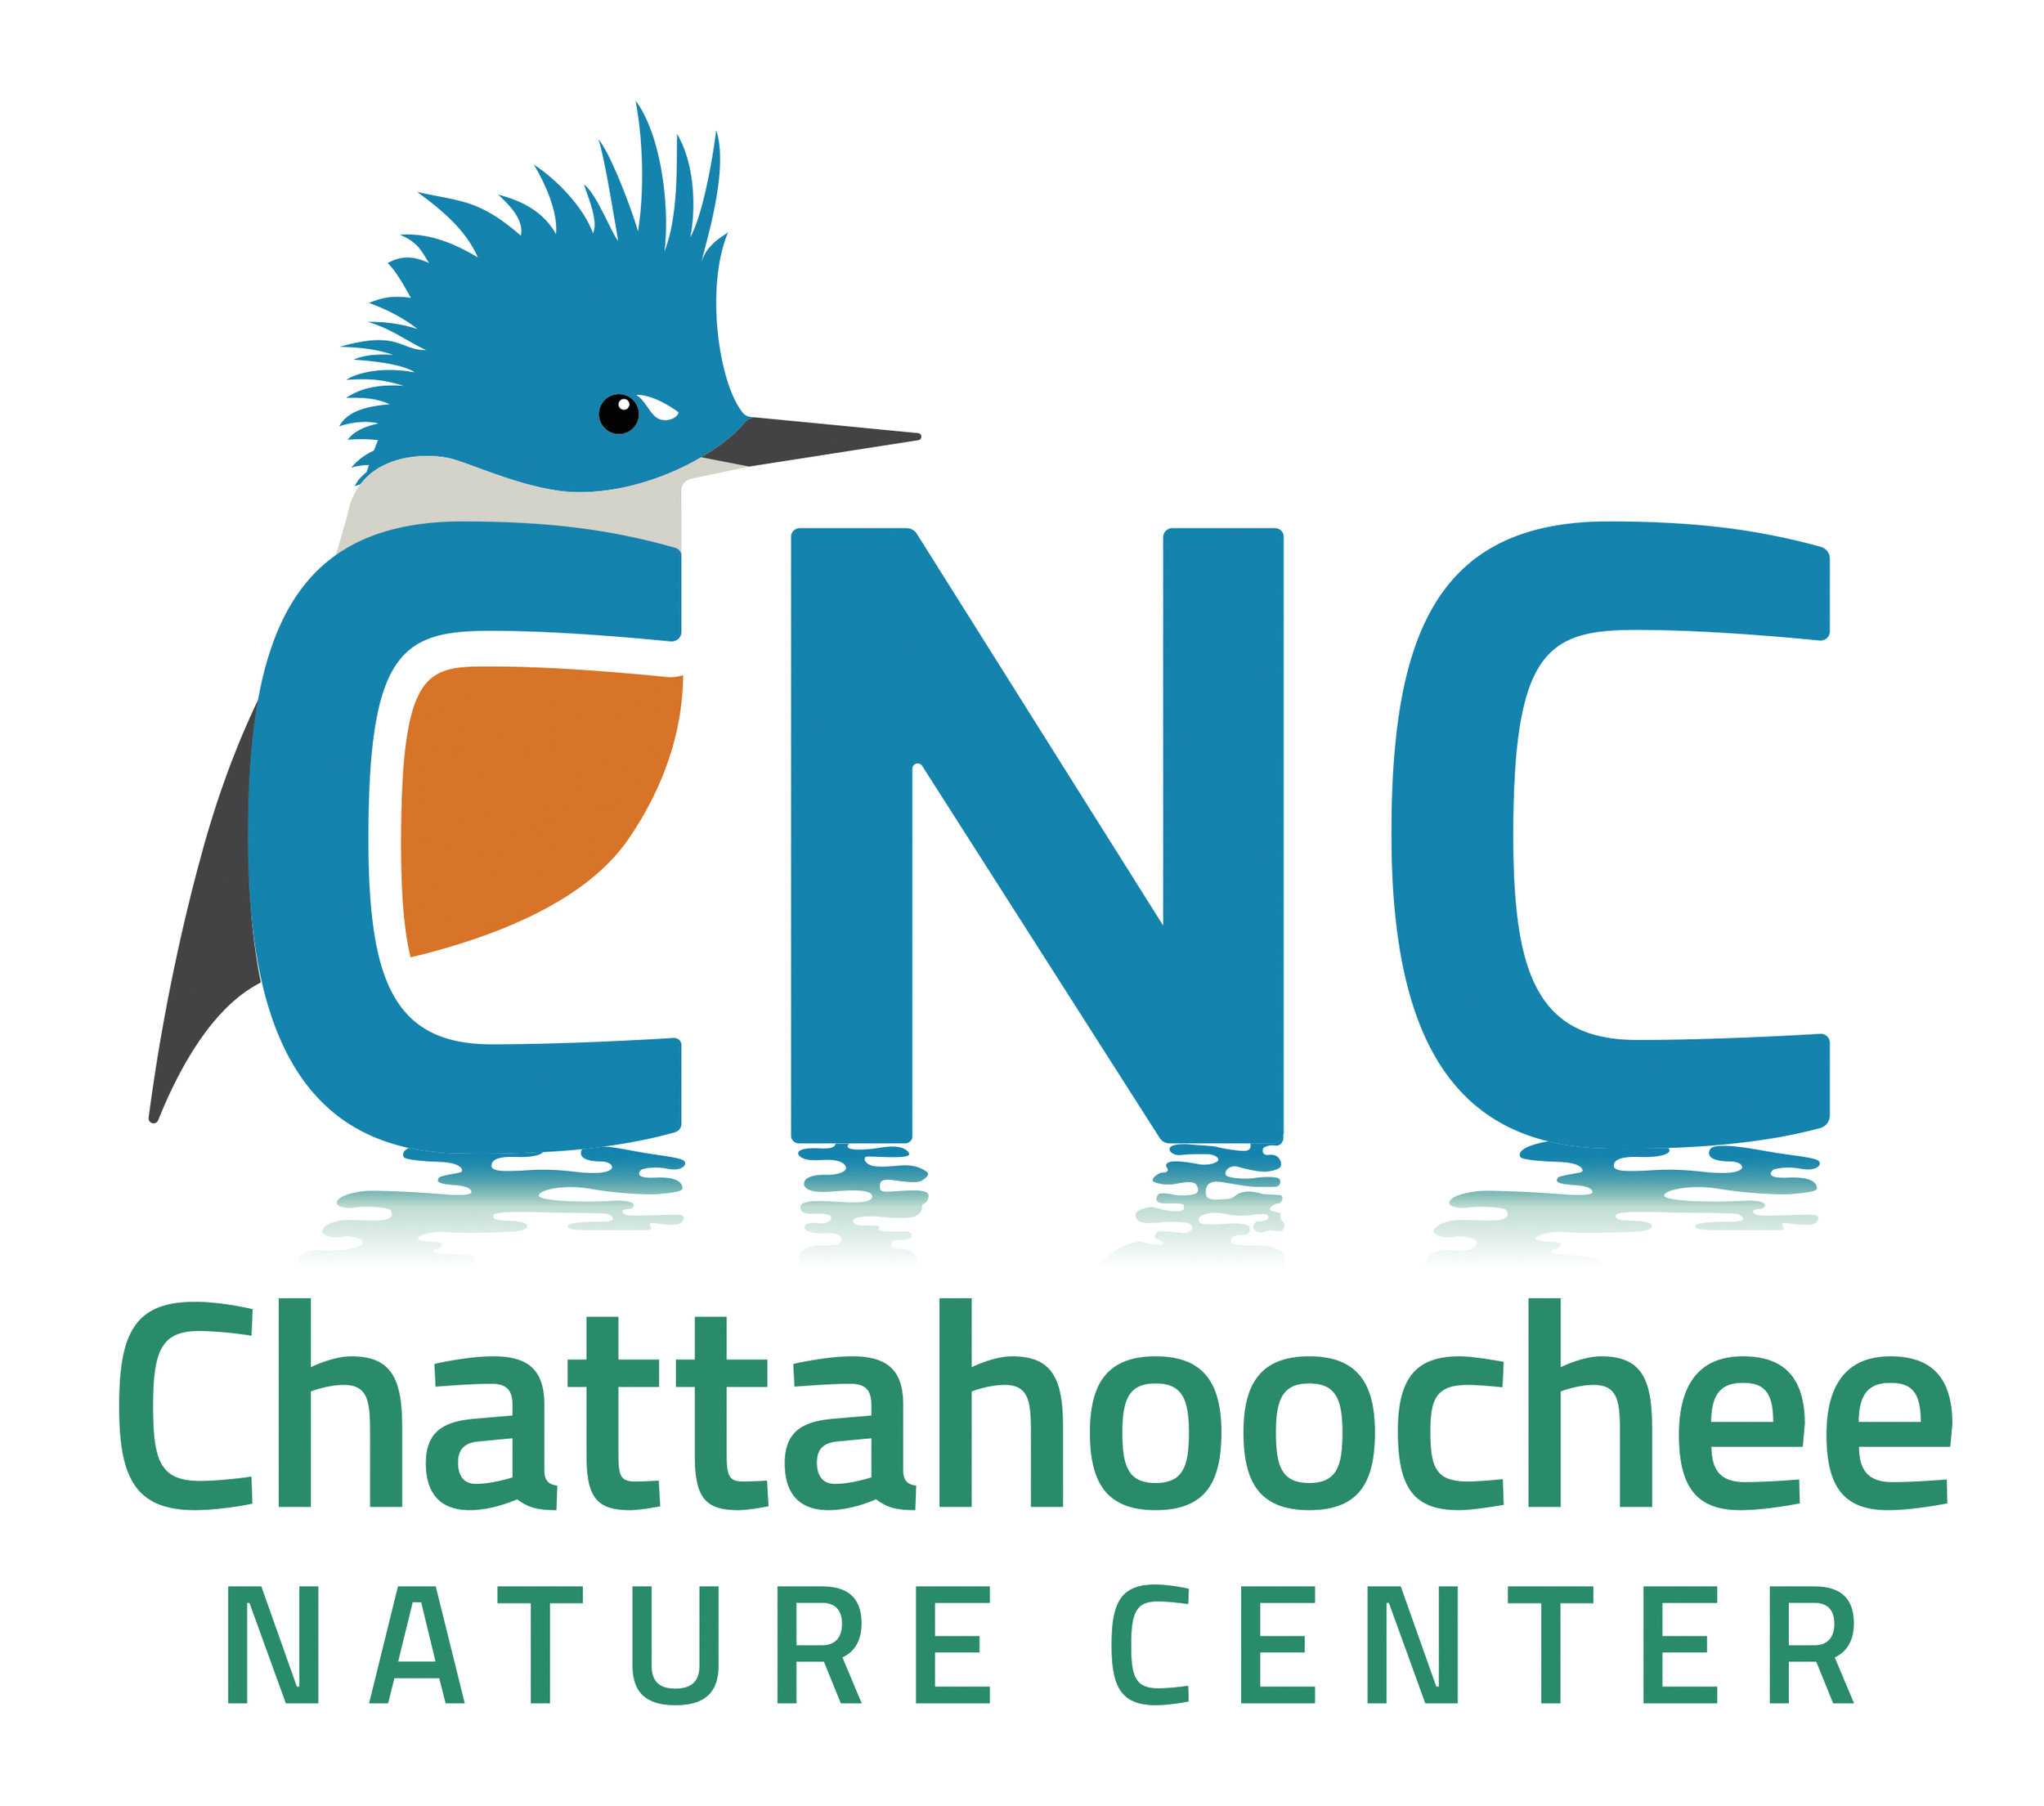 chattnaturecenter.org